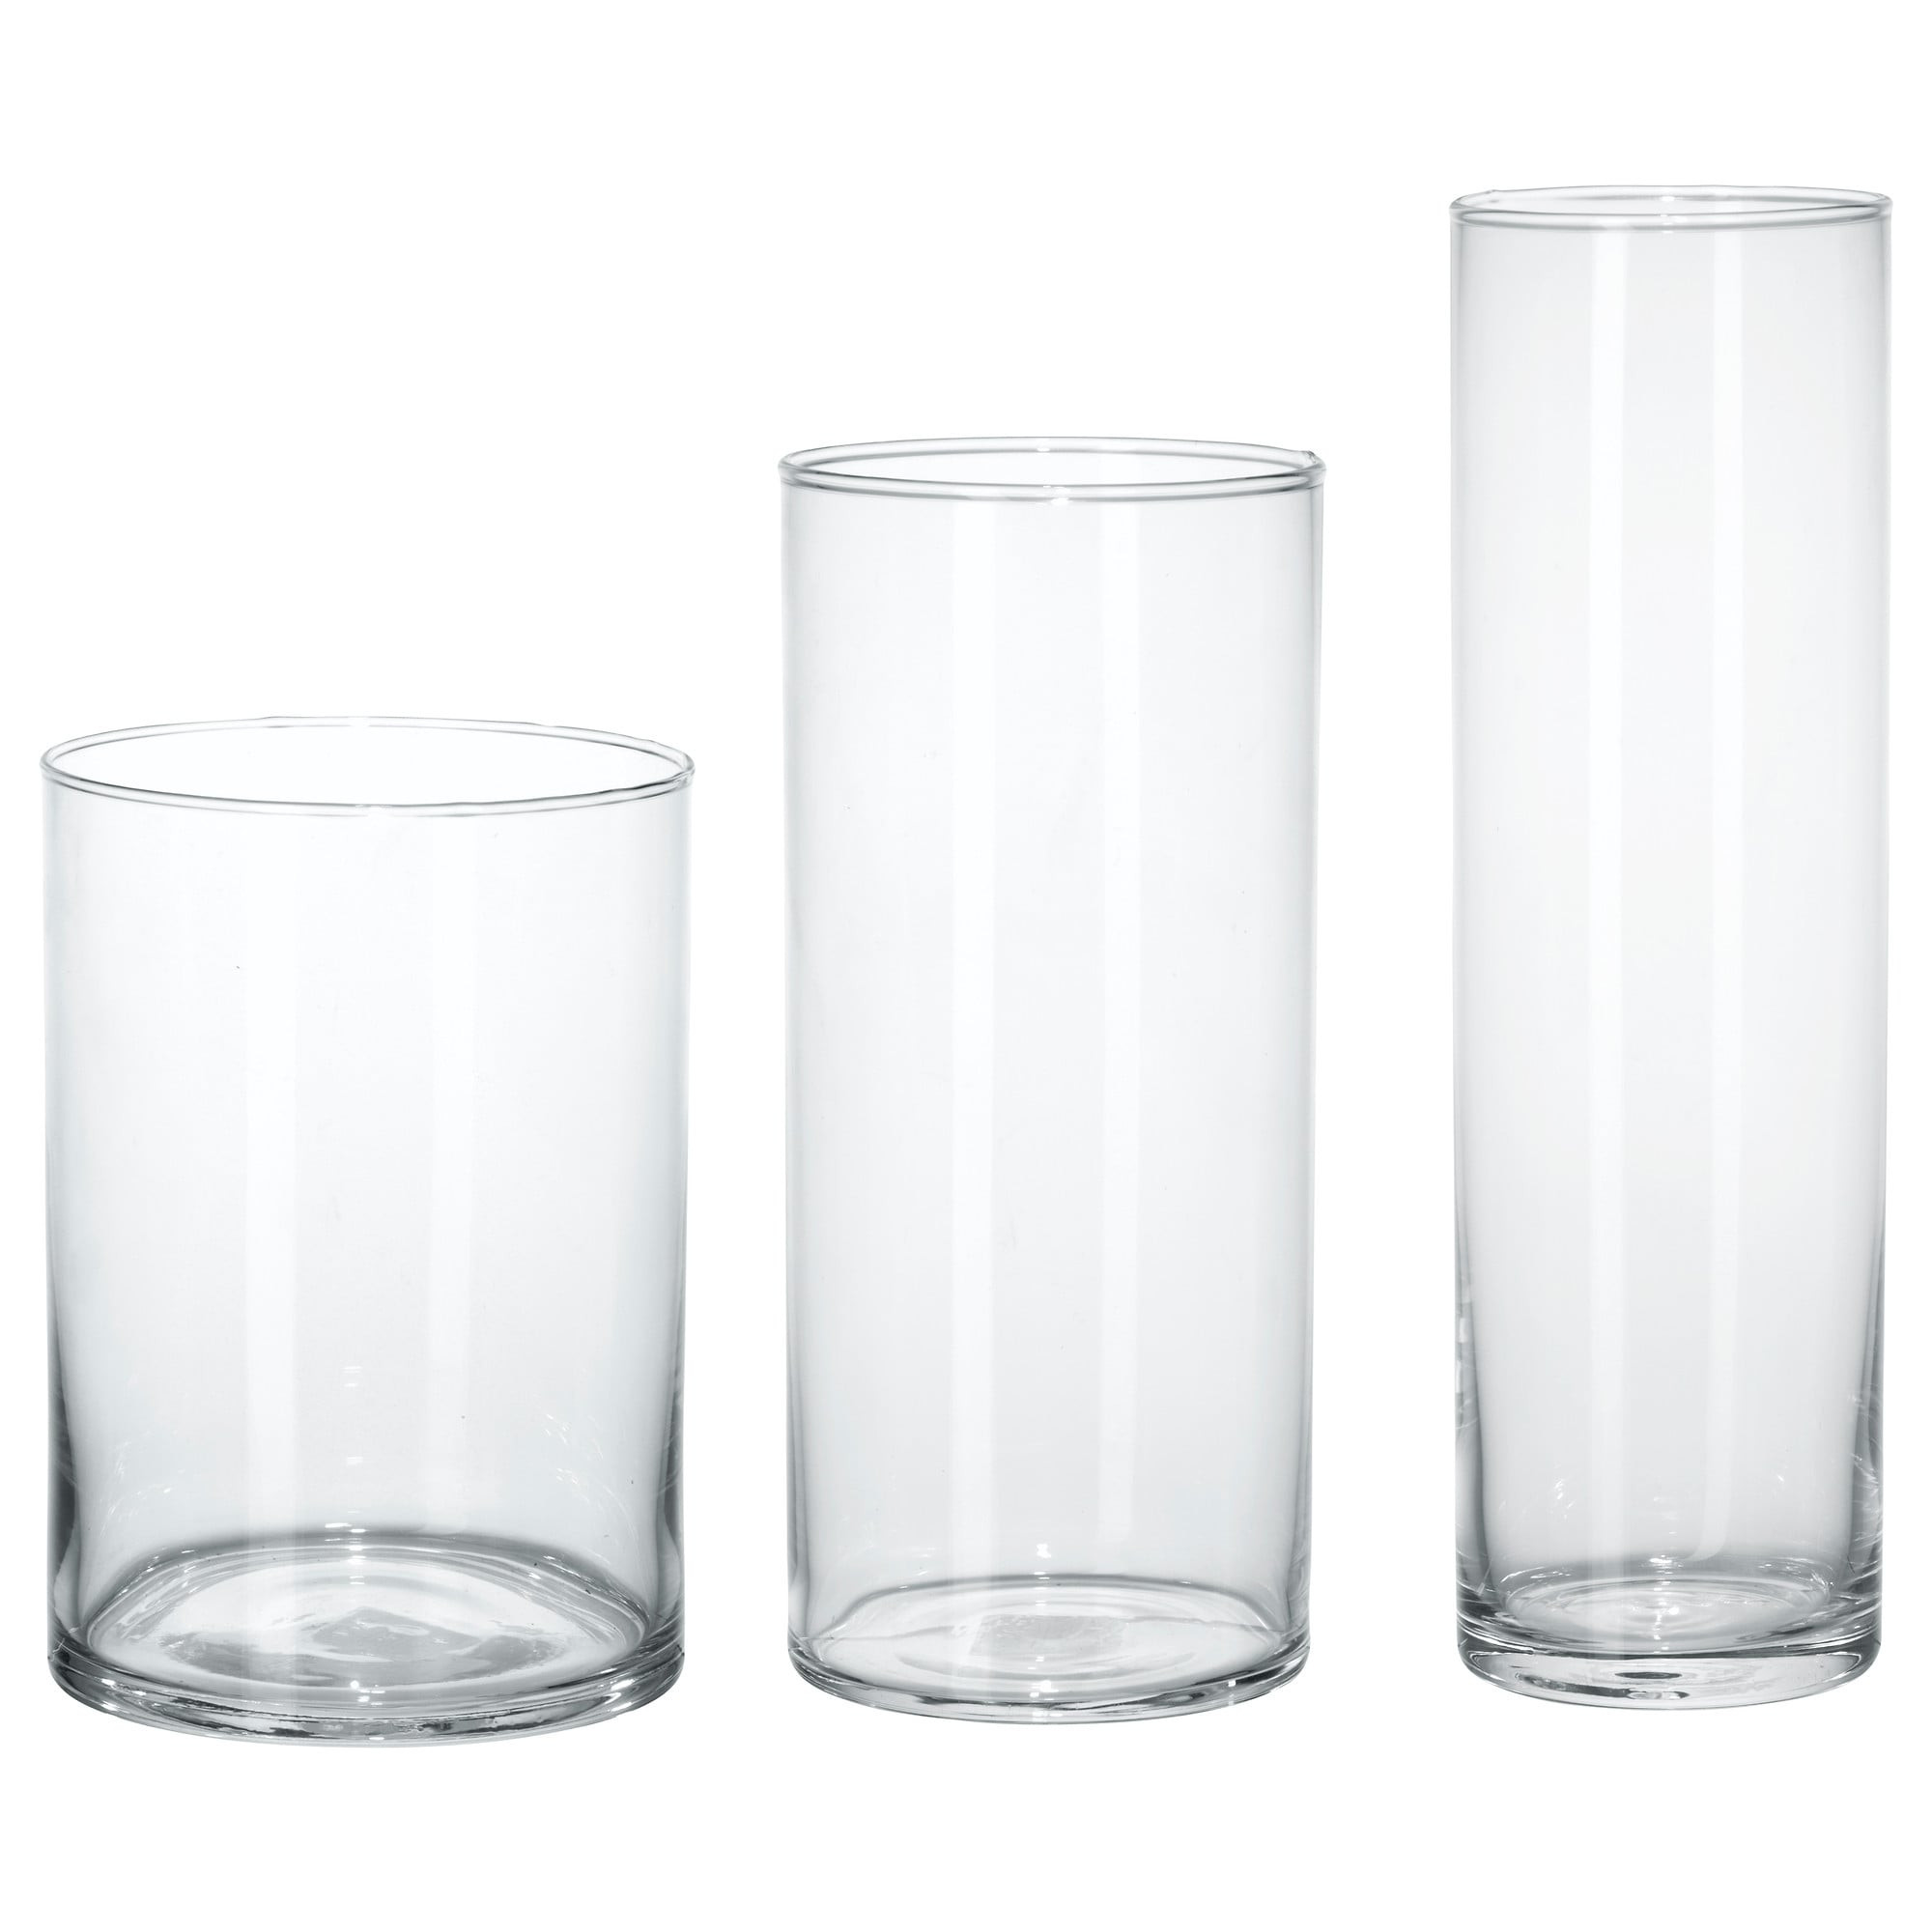 wide cylinder vases cheap of cylinder vase set of 3 ikea inside english frana§ais